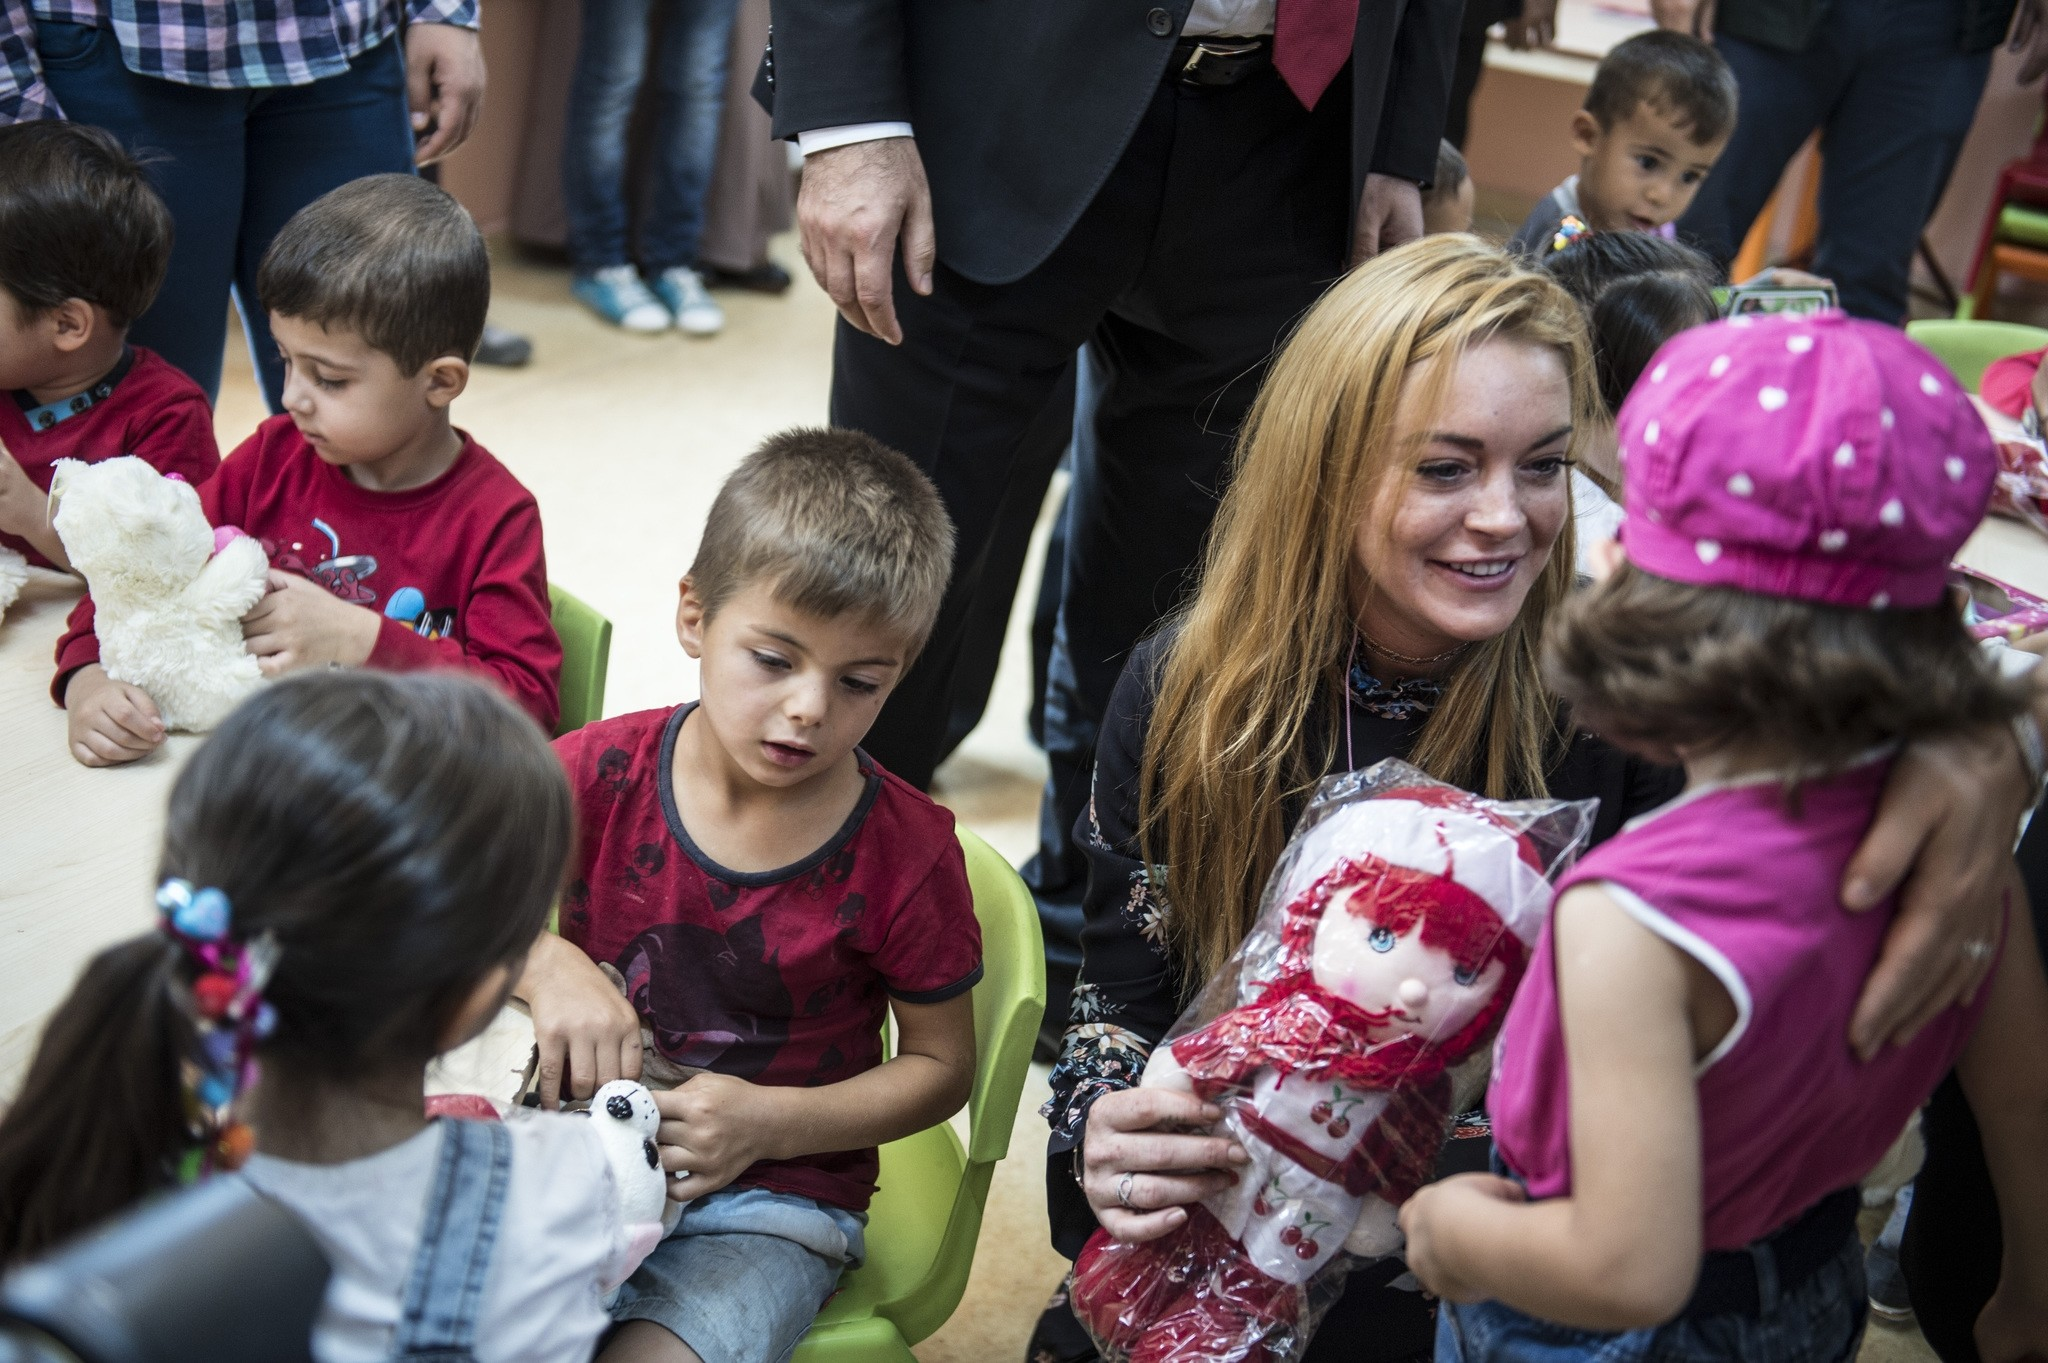 Lindsay Lohan met Syrian children in a refugee camp during her visit to Turkey.